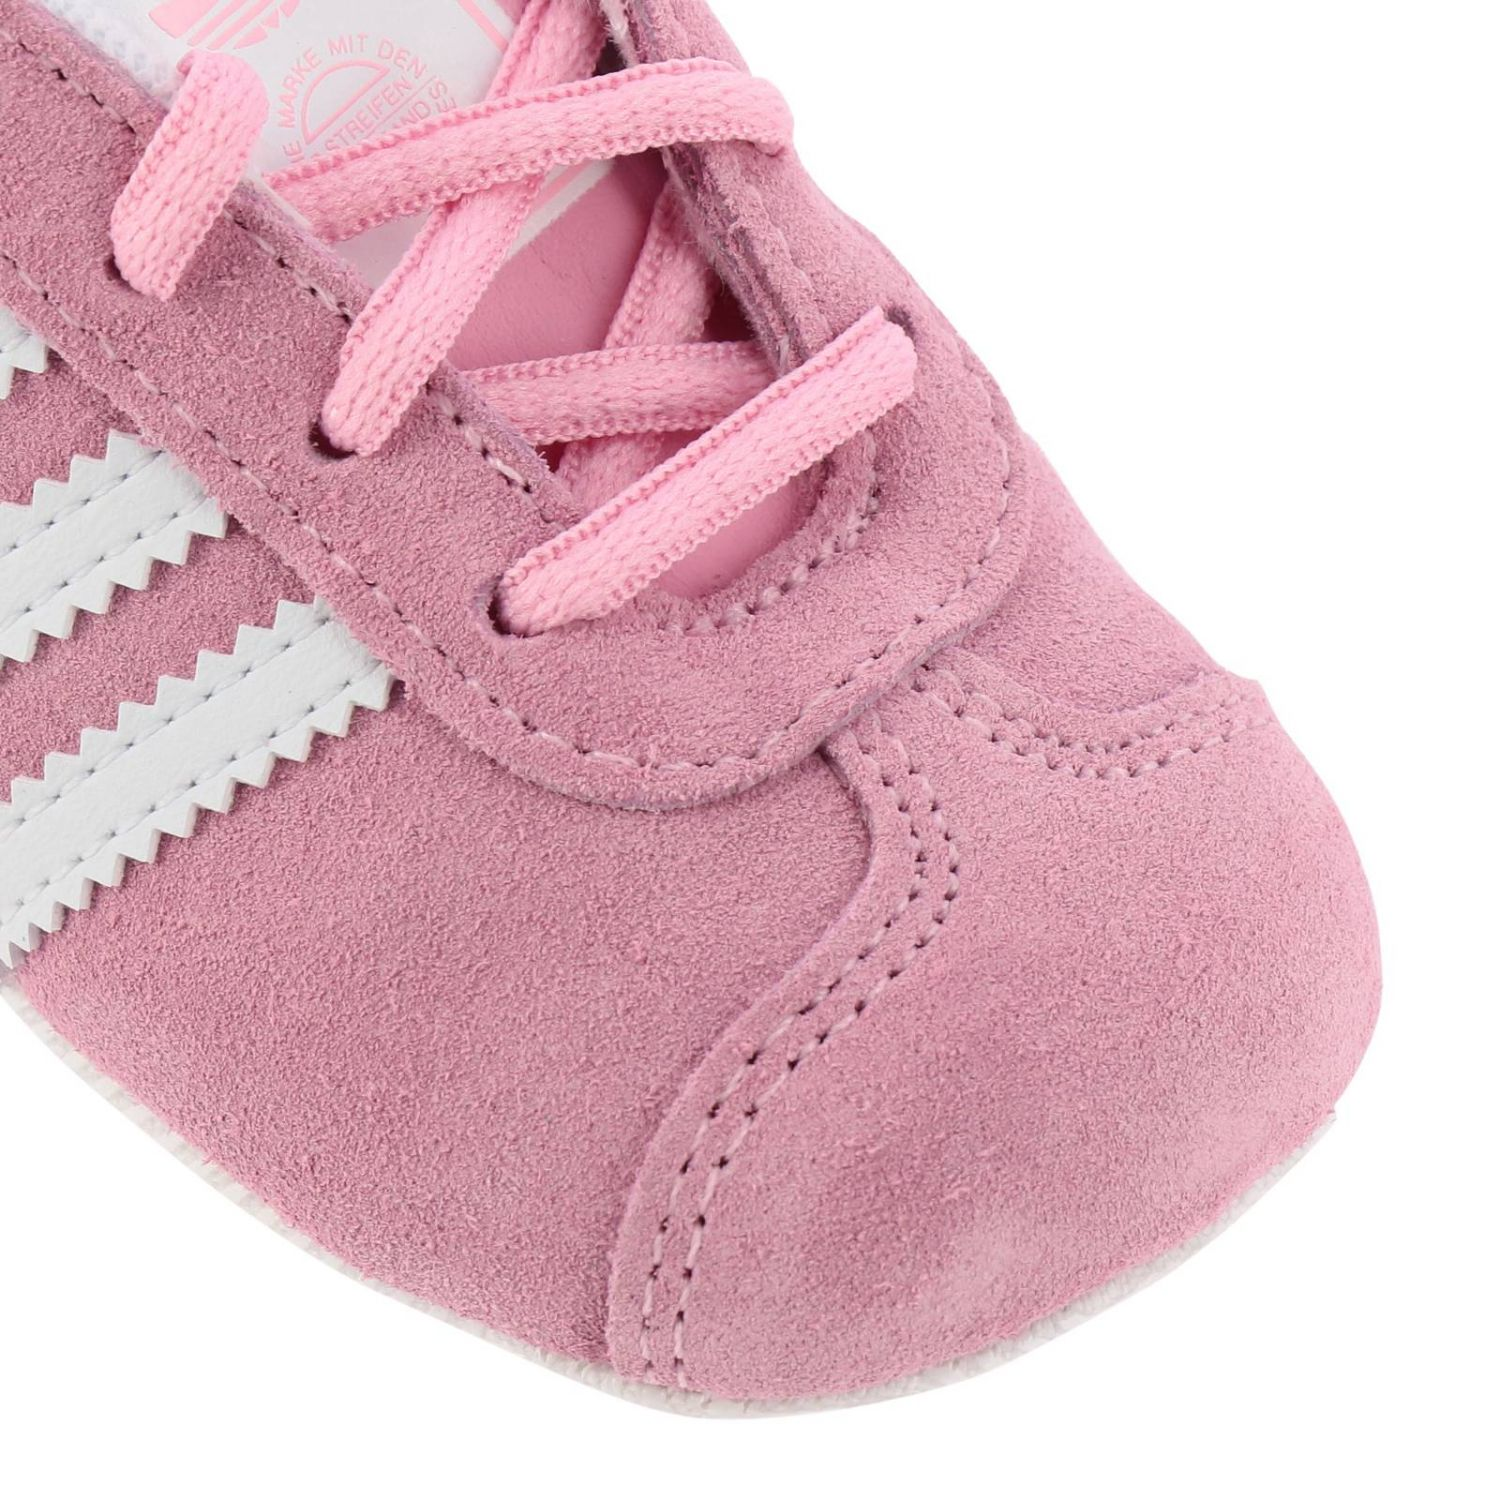 Shoes Adidas Originals: Gazelle Crib Adidas Originals Classic sneakers in suede and smooth leather pink 3